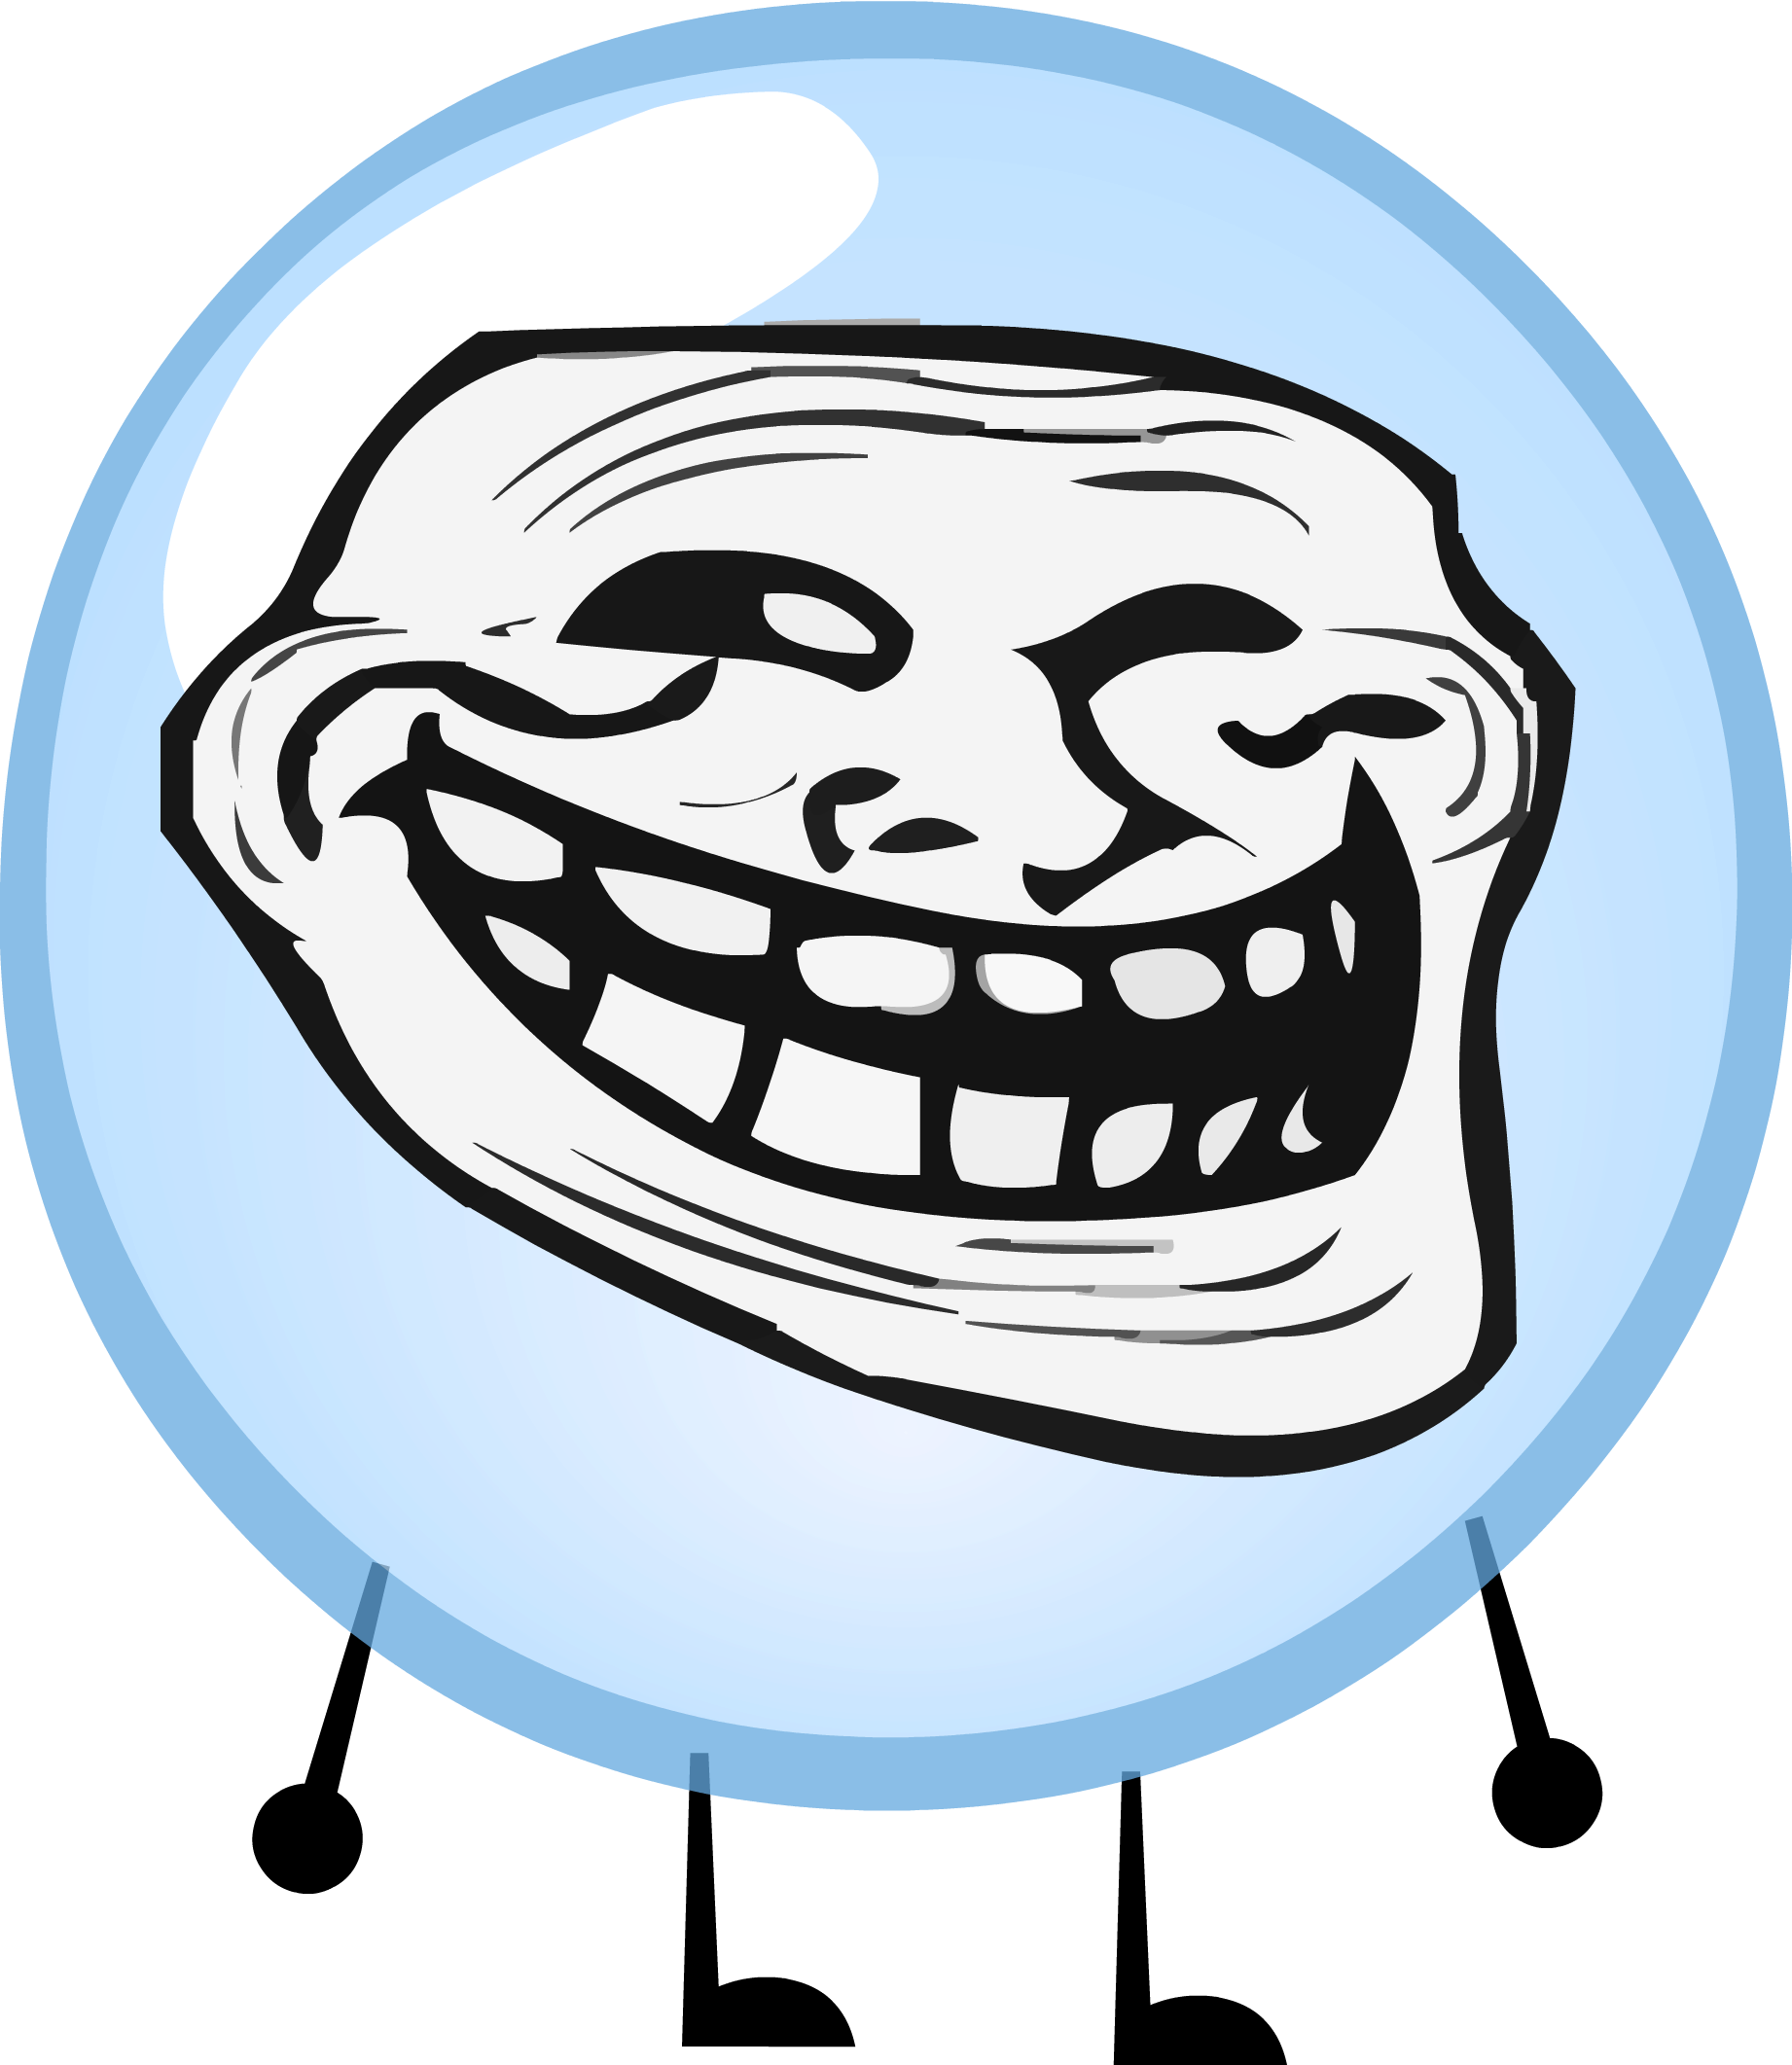 File:Bubble Troll Face.png